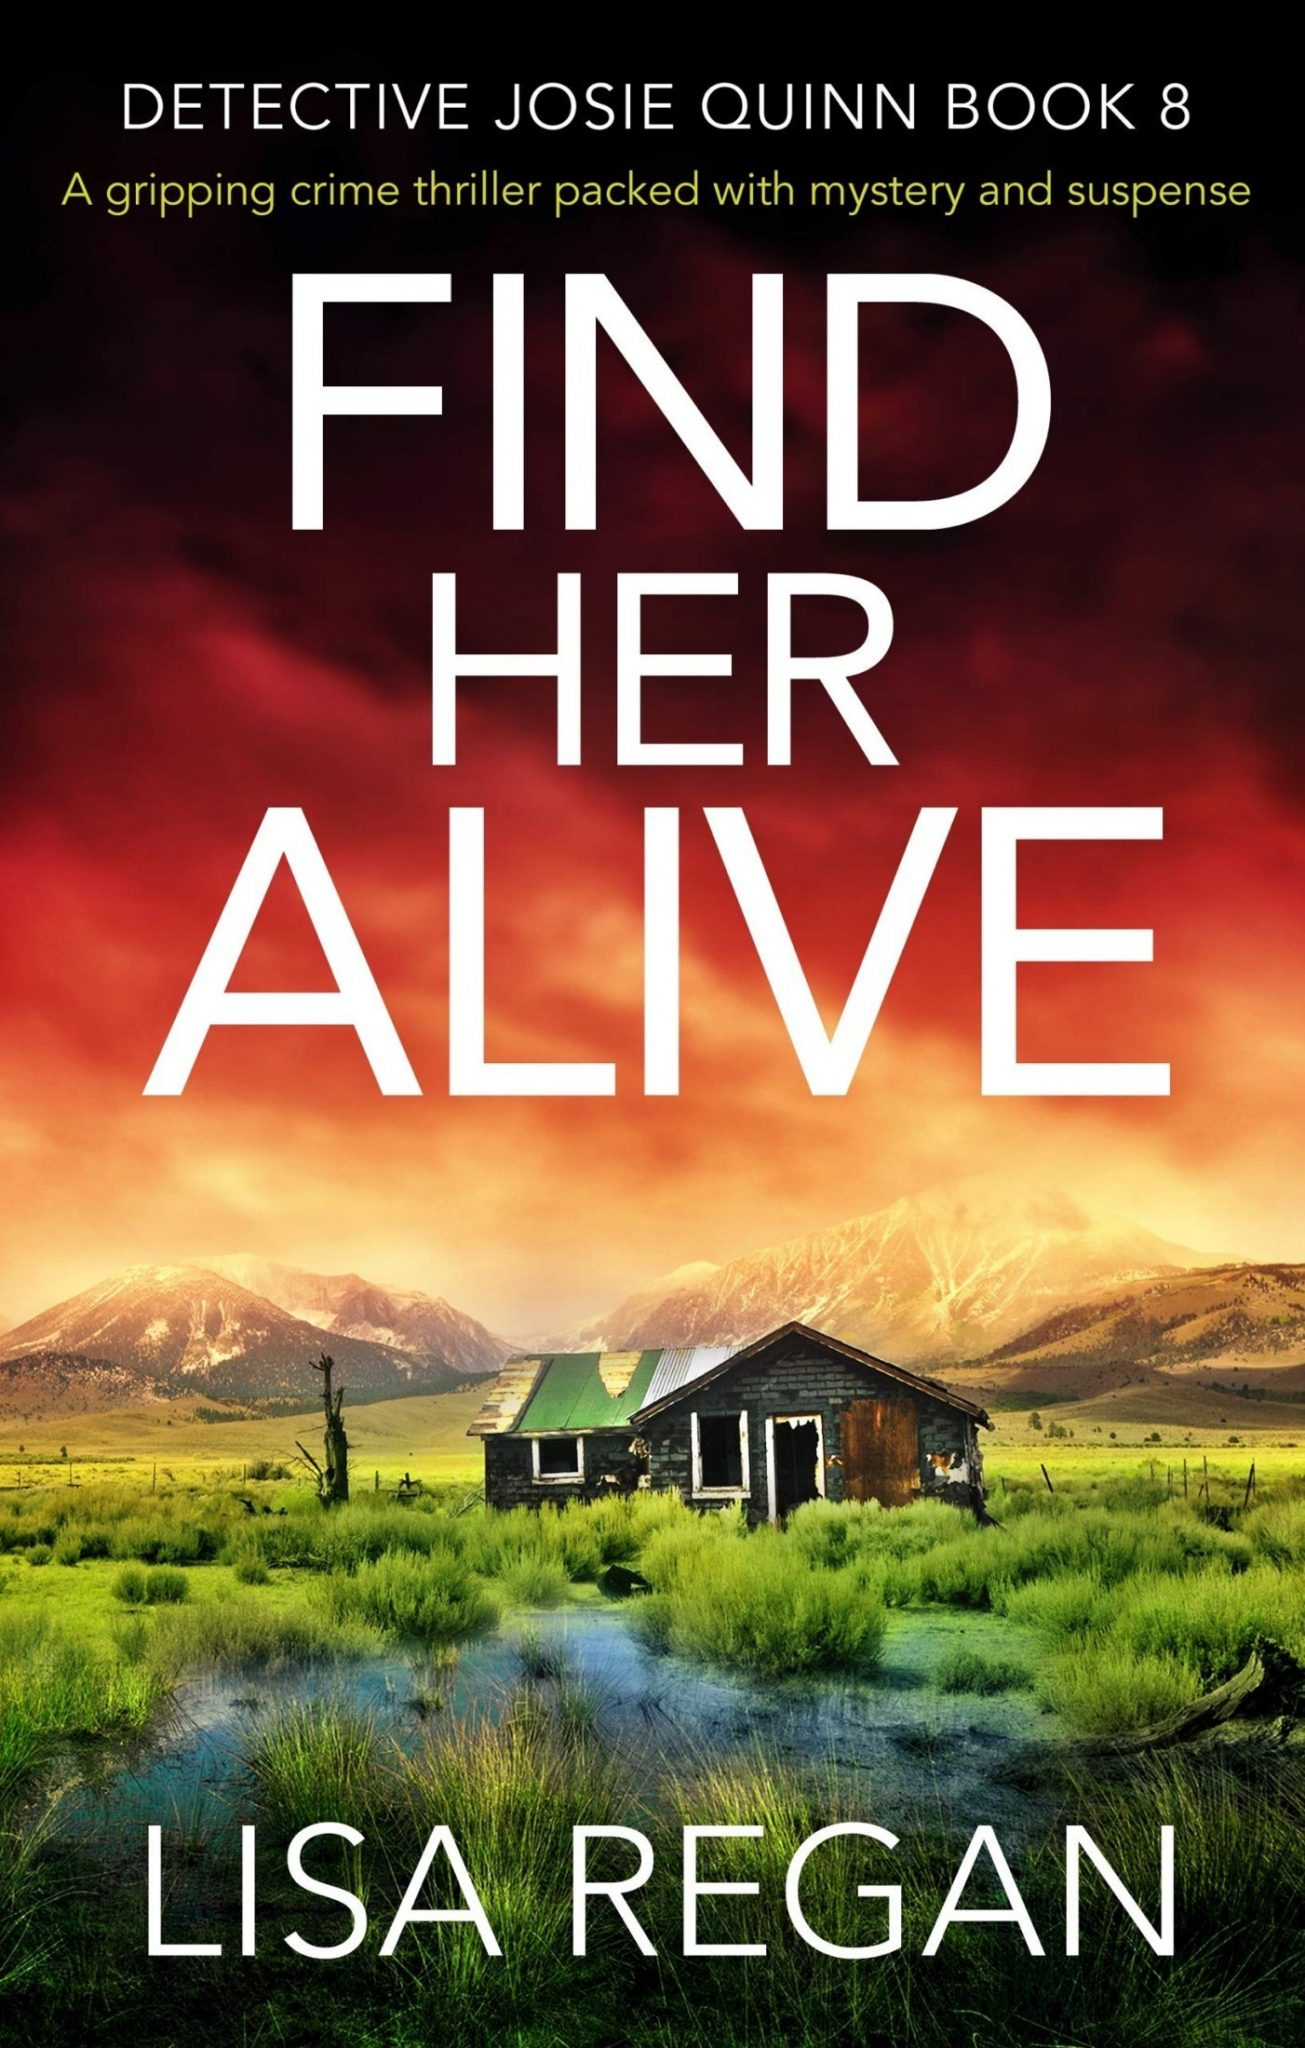 Find Her Alive by Lisa Regan